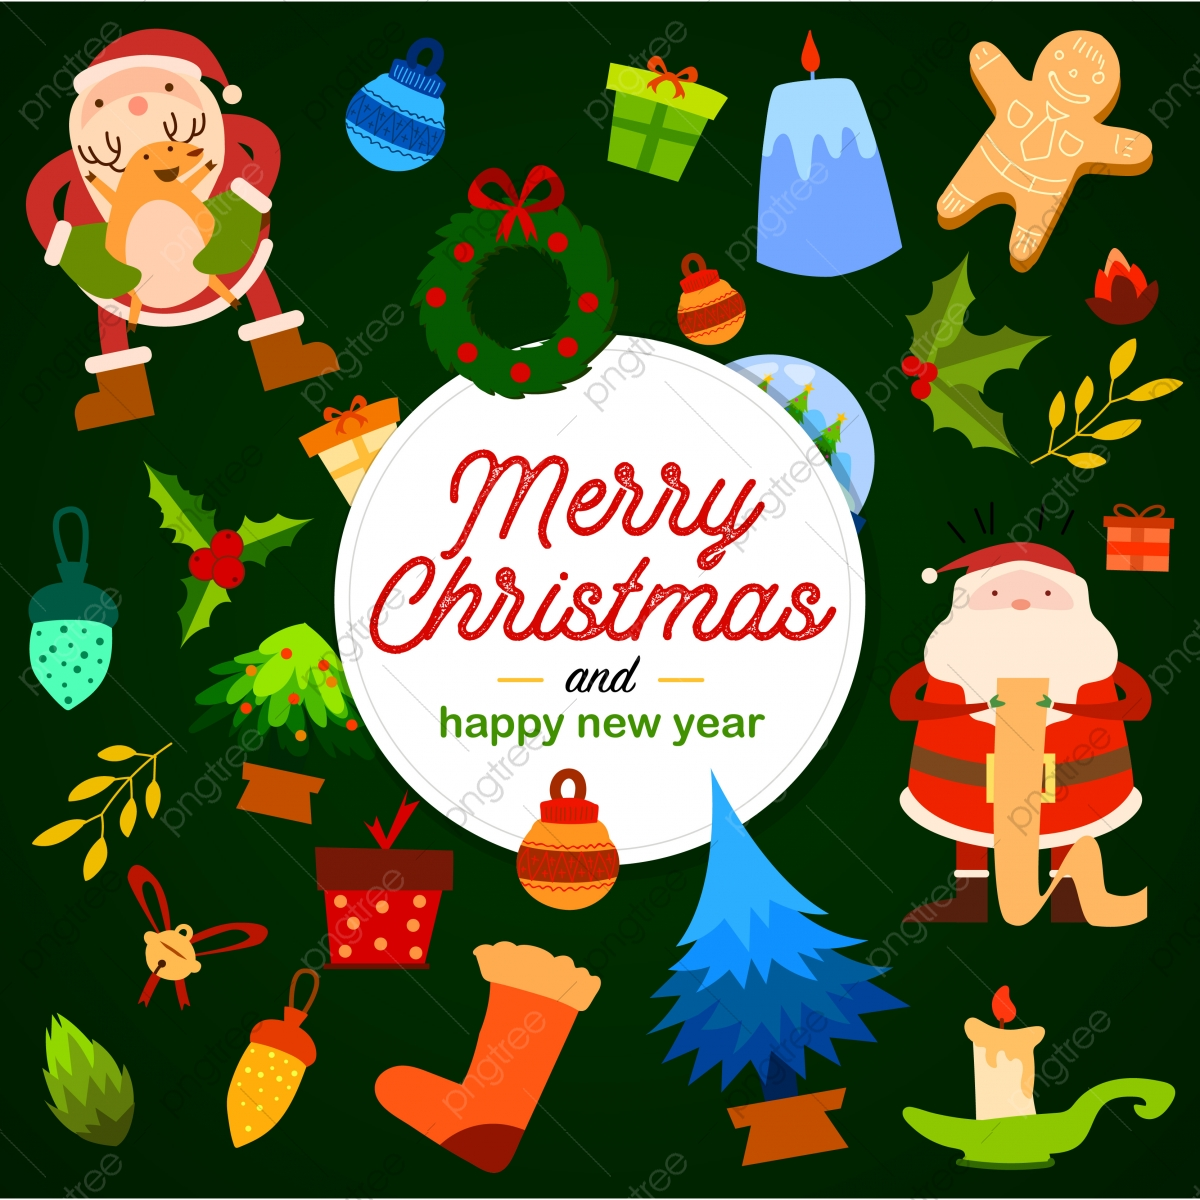 Merry Christmas Happy New Year Card Graphics Background Ball Card Png And Vector With Transparent Background For Free Download